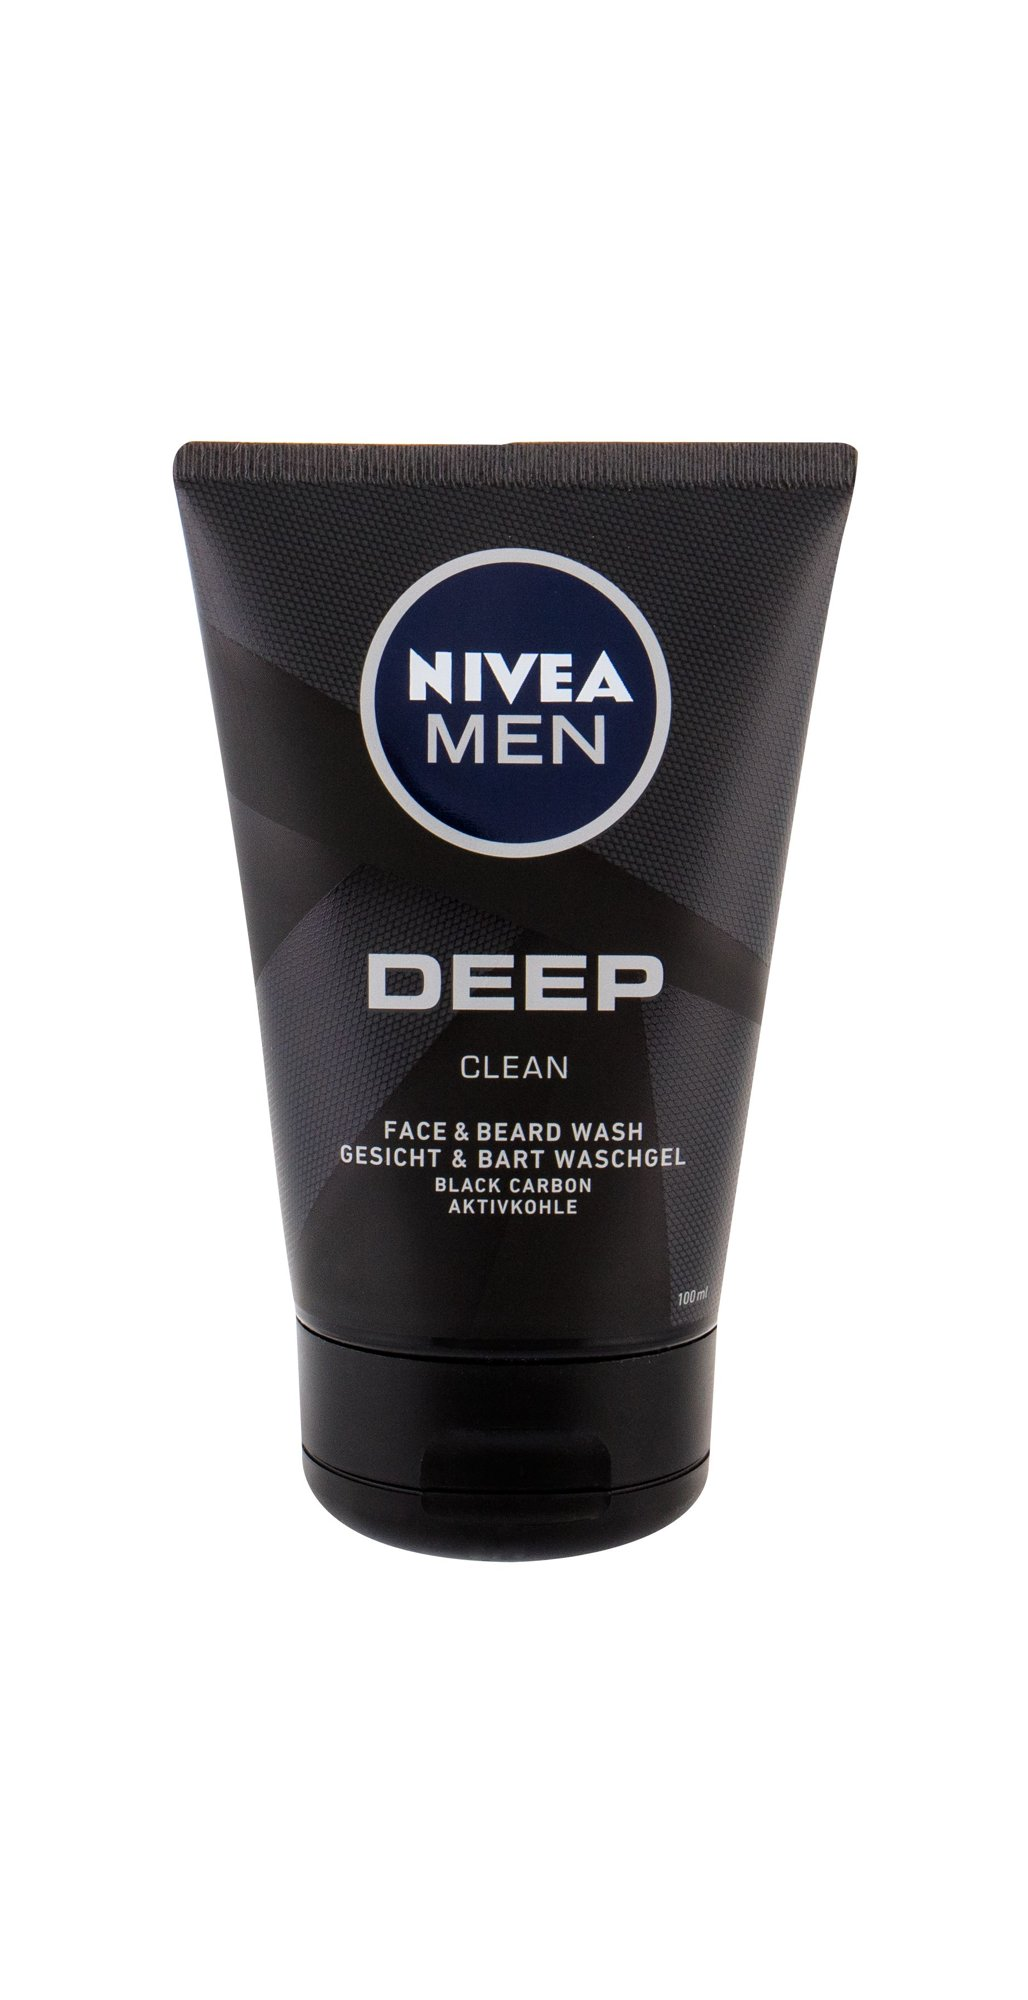 Nivea Men Deep Shower Gel 100ml